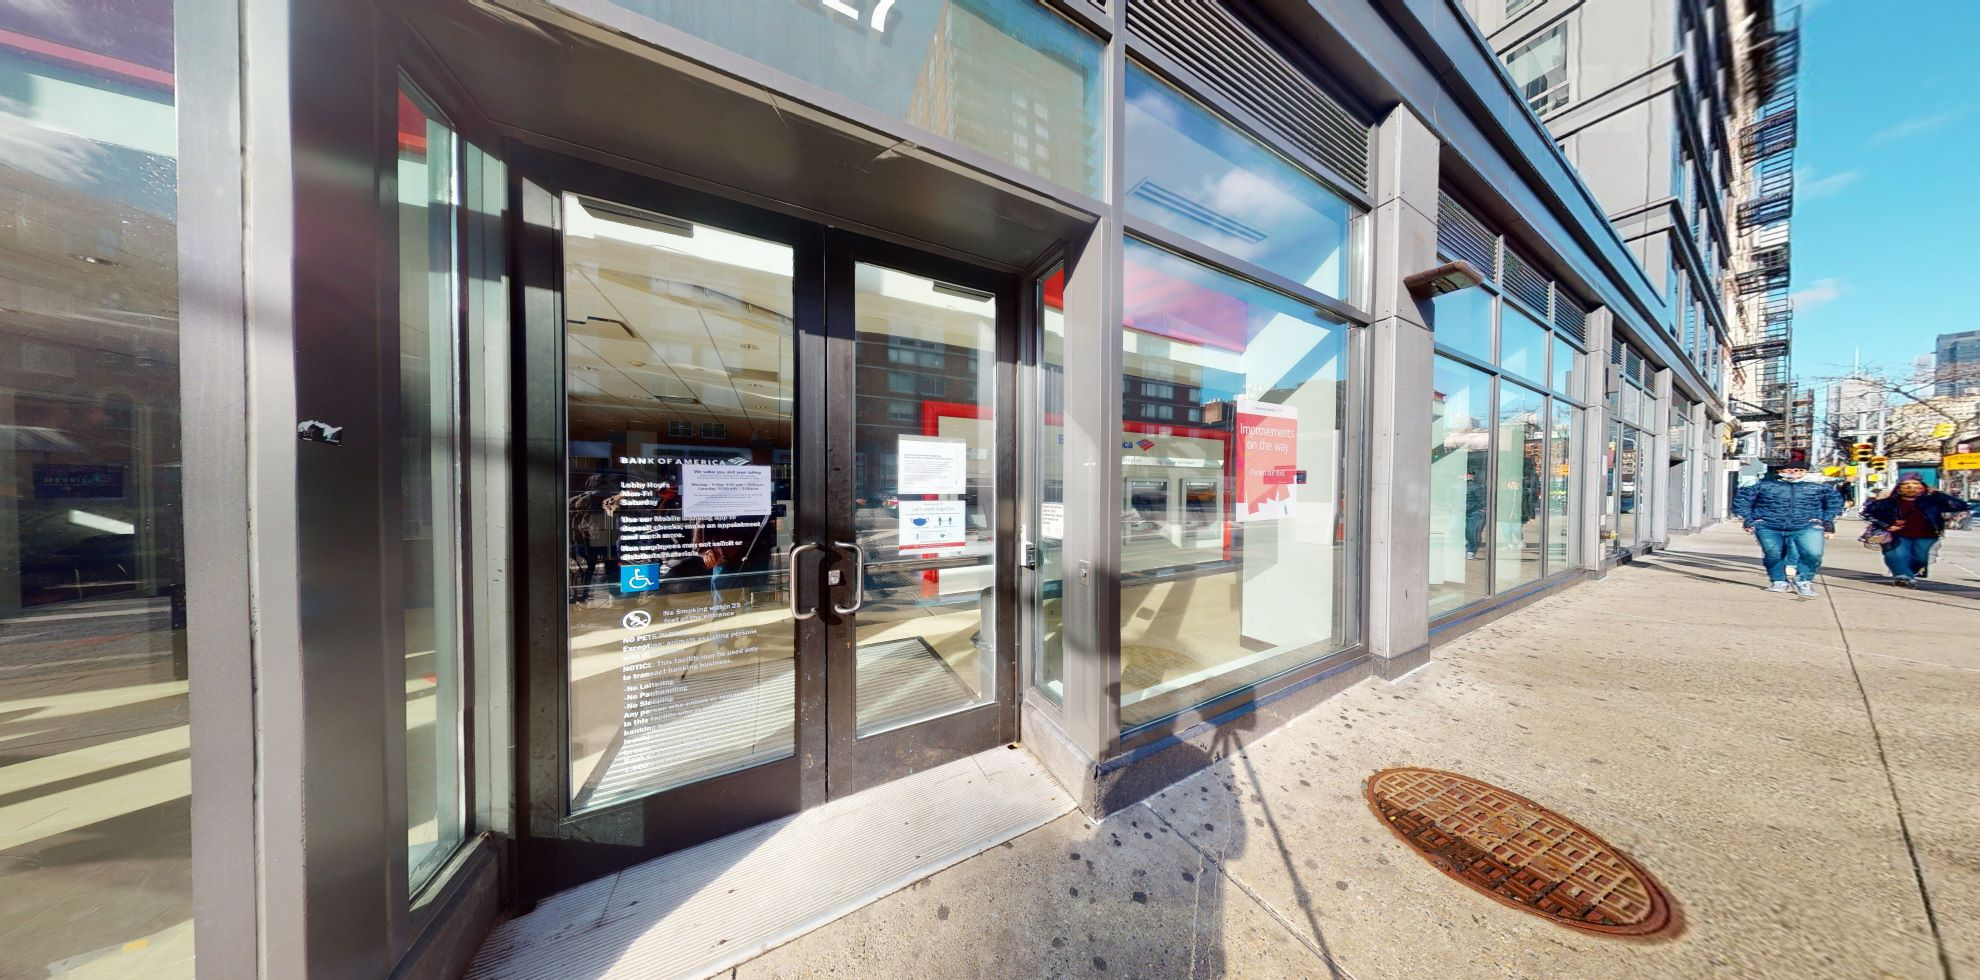 Bank of America financial center with walk-up ATM | 127 8th Ave, New York, NY 10011